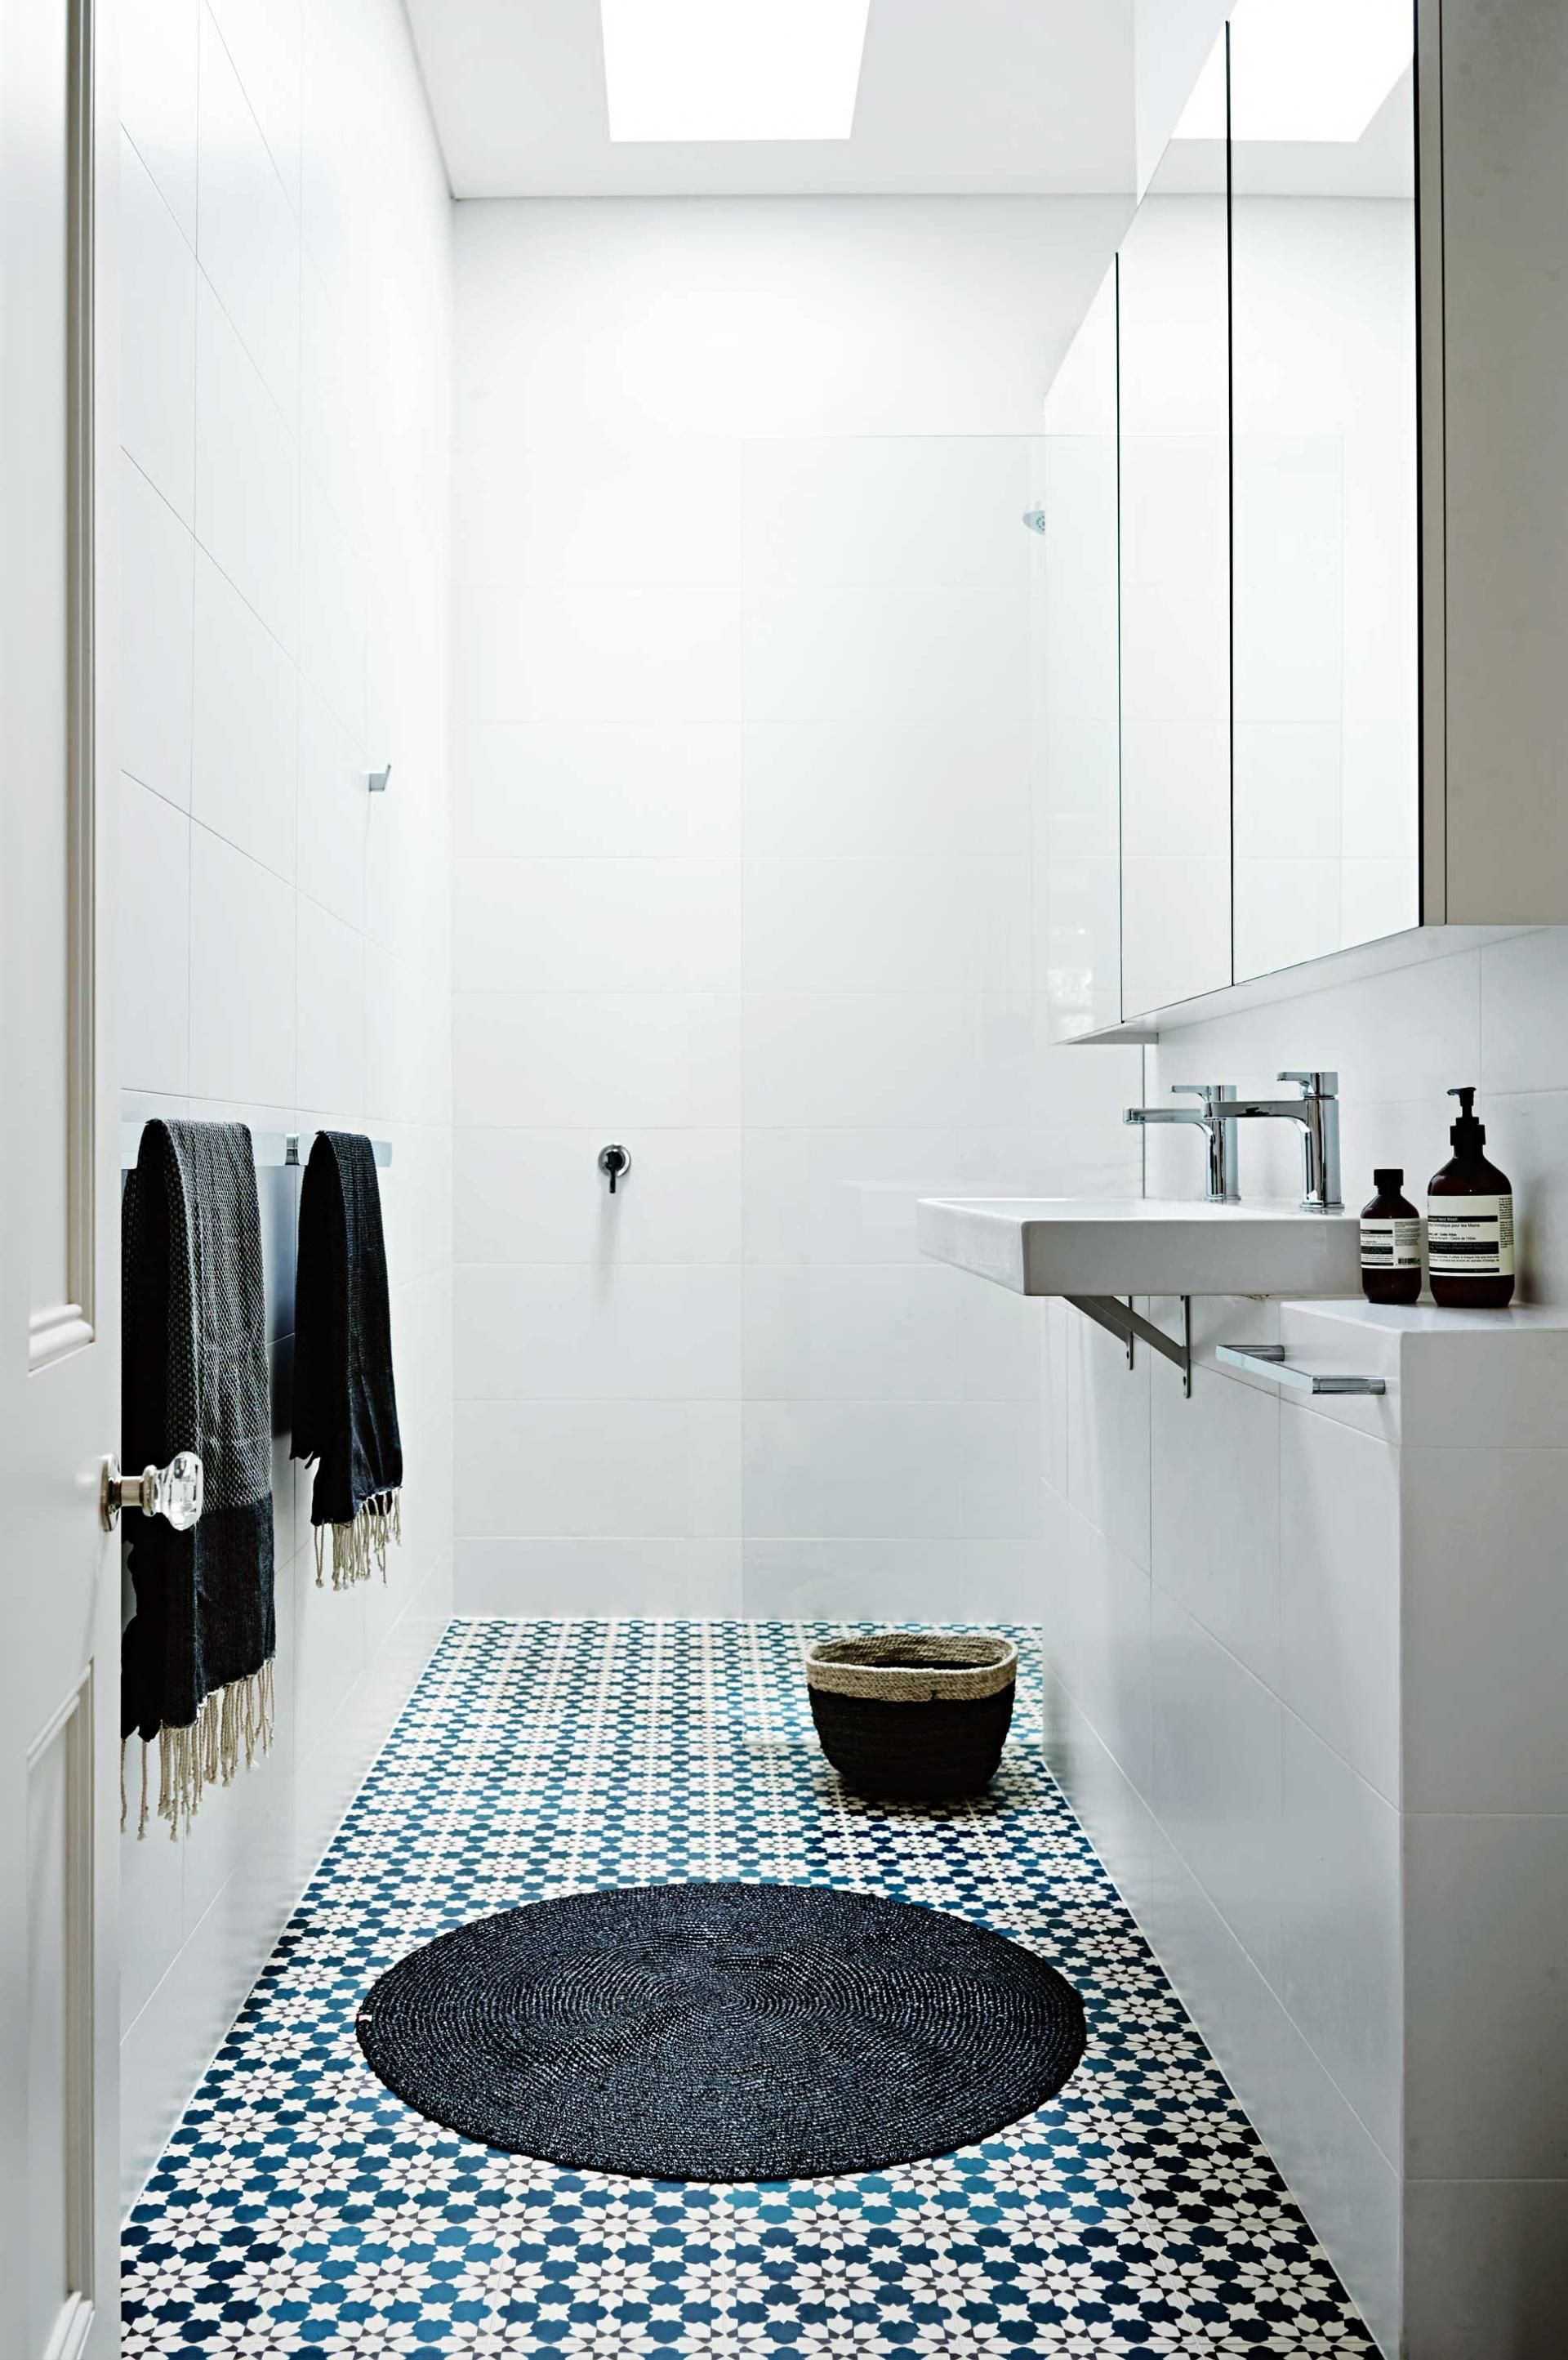 Stylish Remodeling Ideas for Small Bathrooms   Small bathroom     Stylish Remodeling Ideas for Small Bathrooms